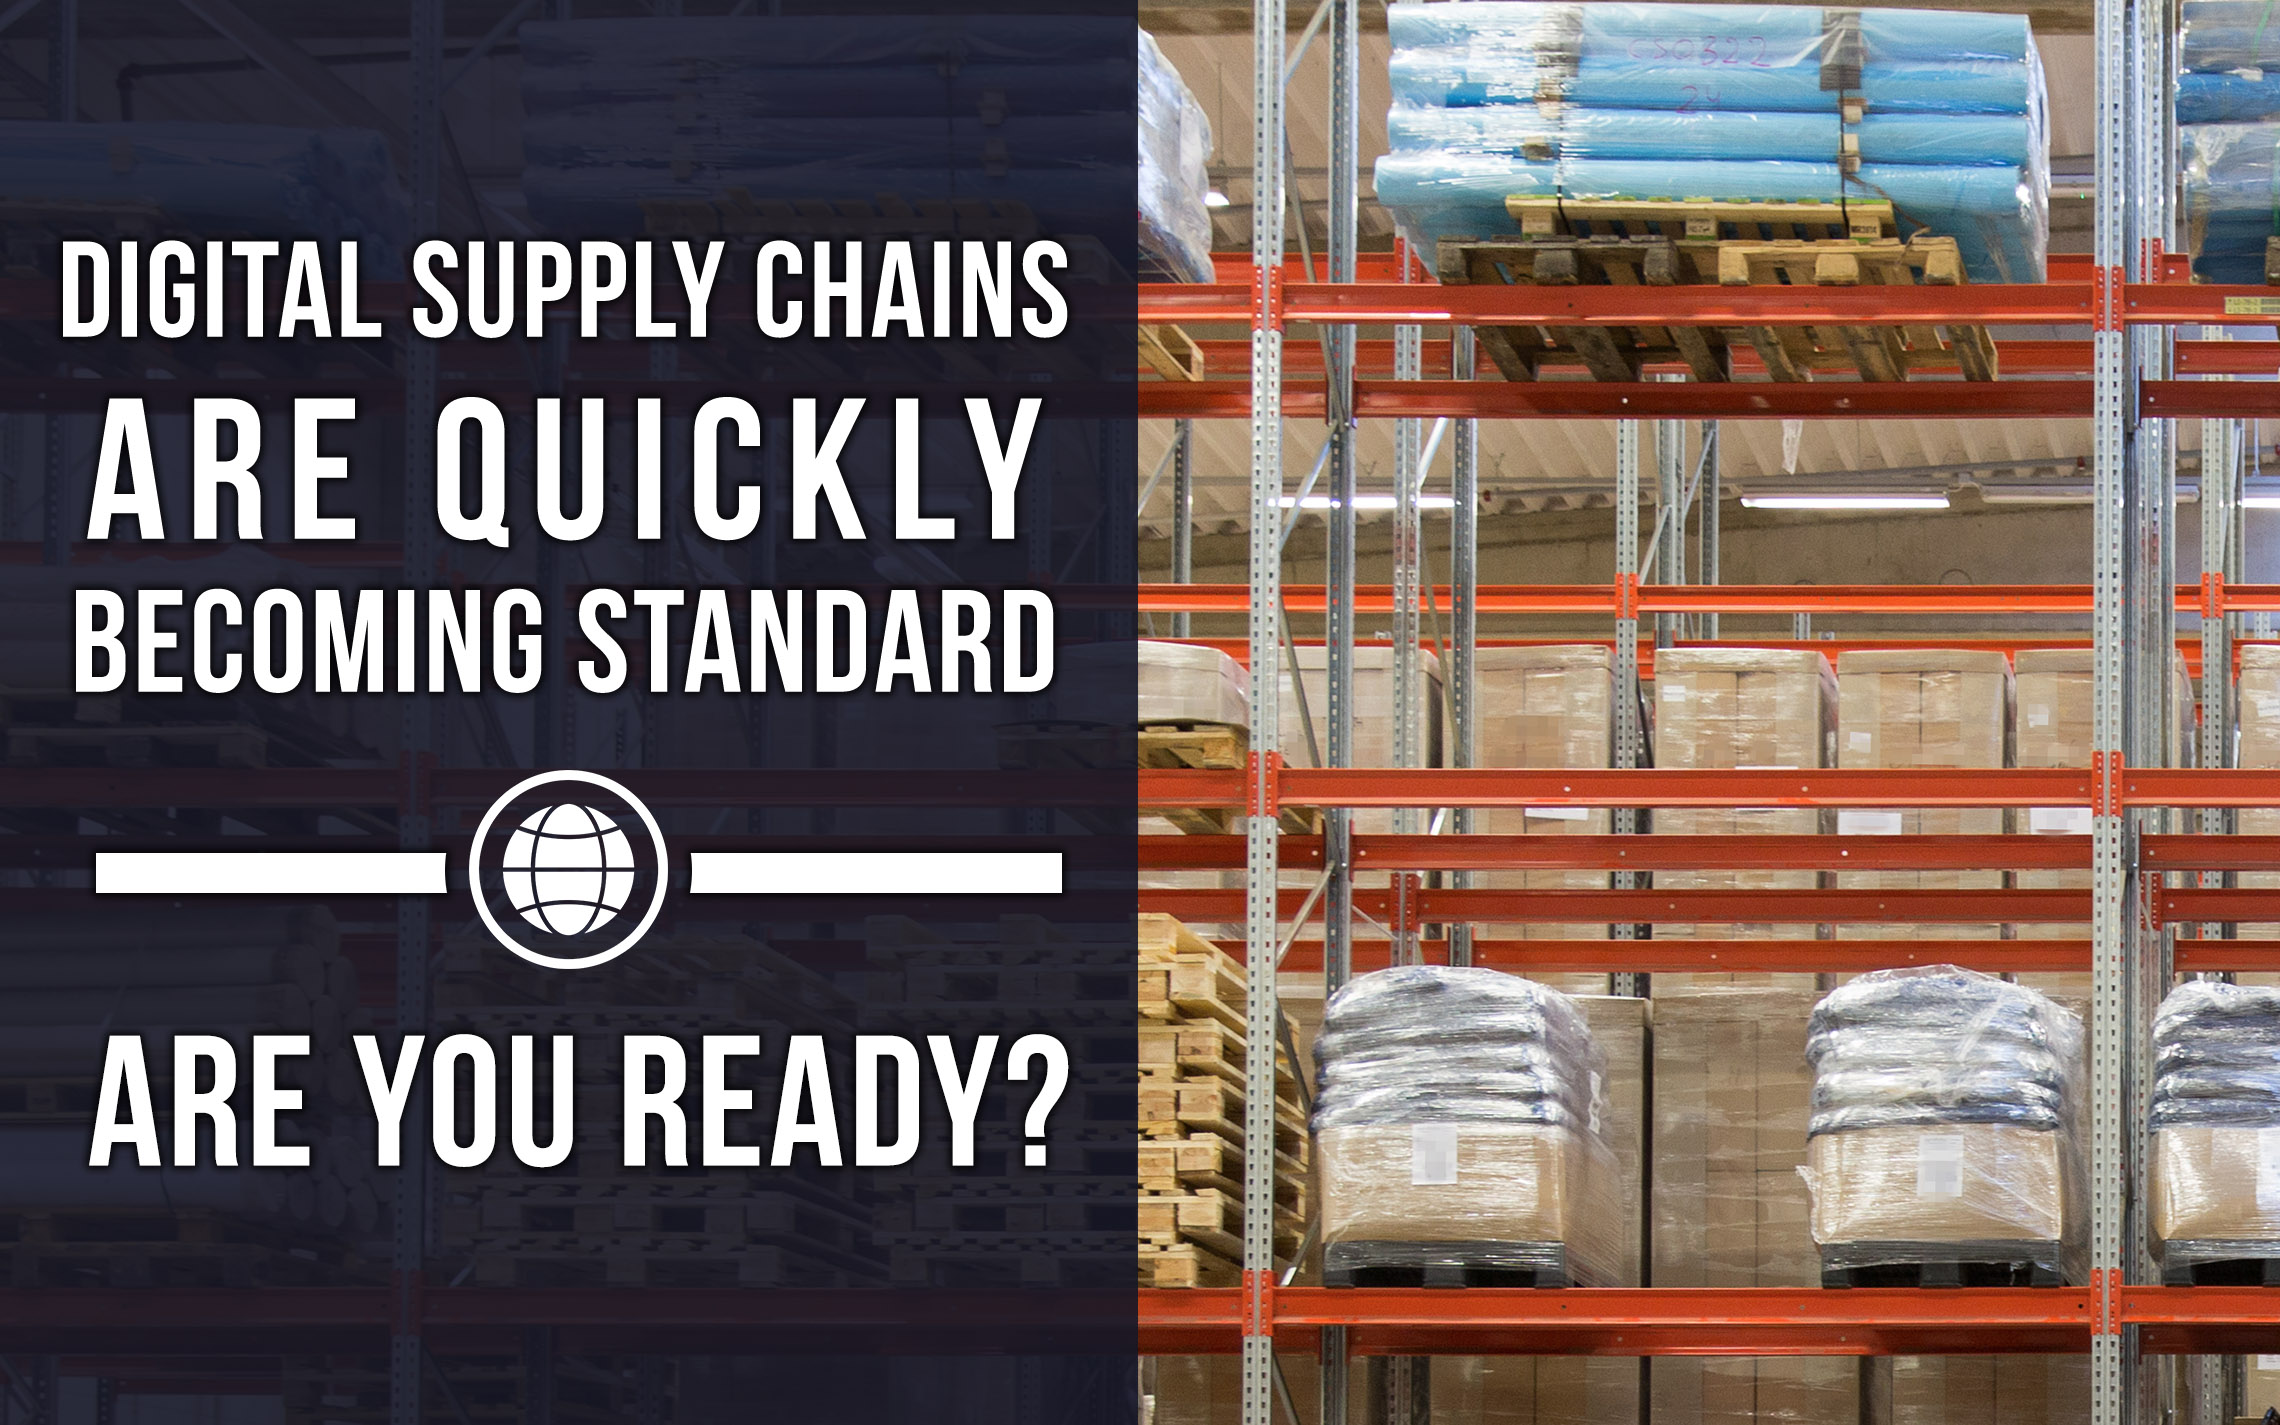 Digital Supply Chains are Quickly Becoming Standard